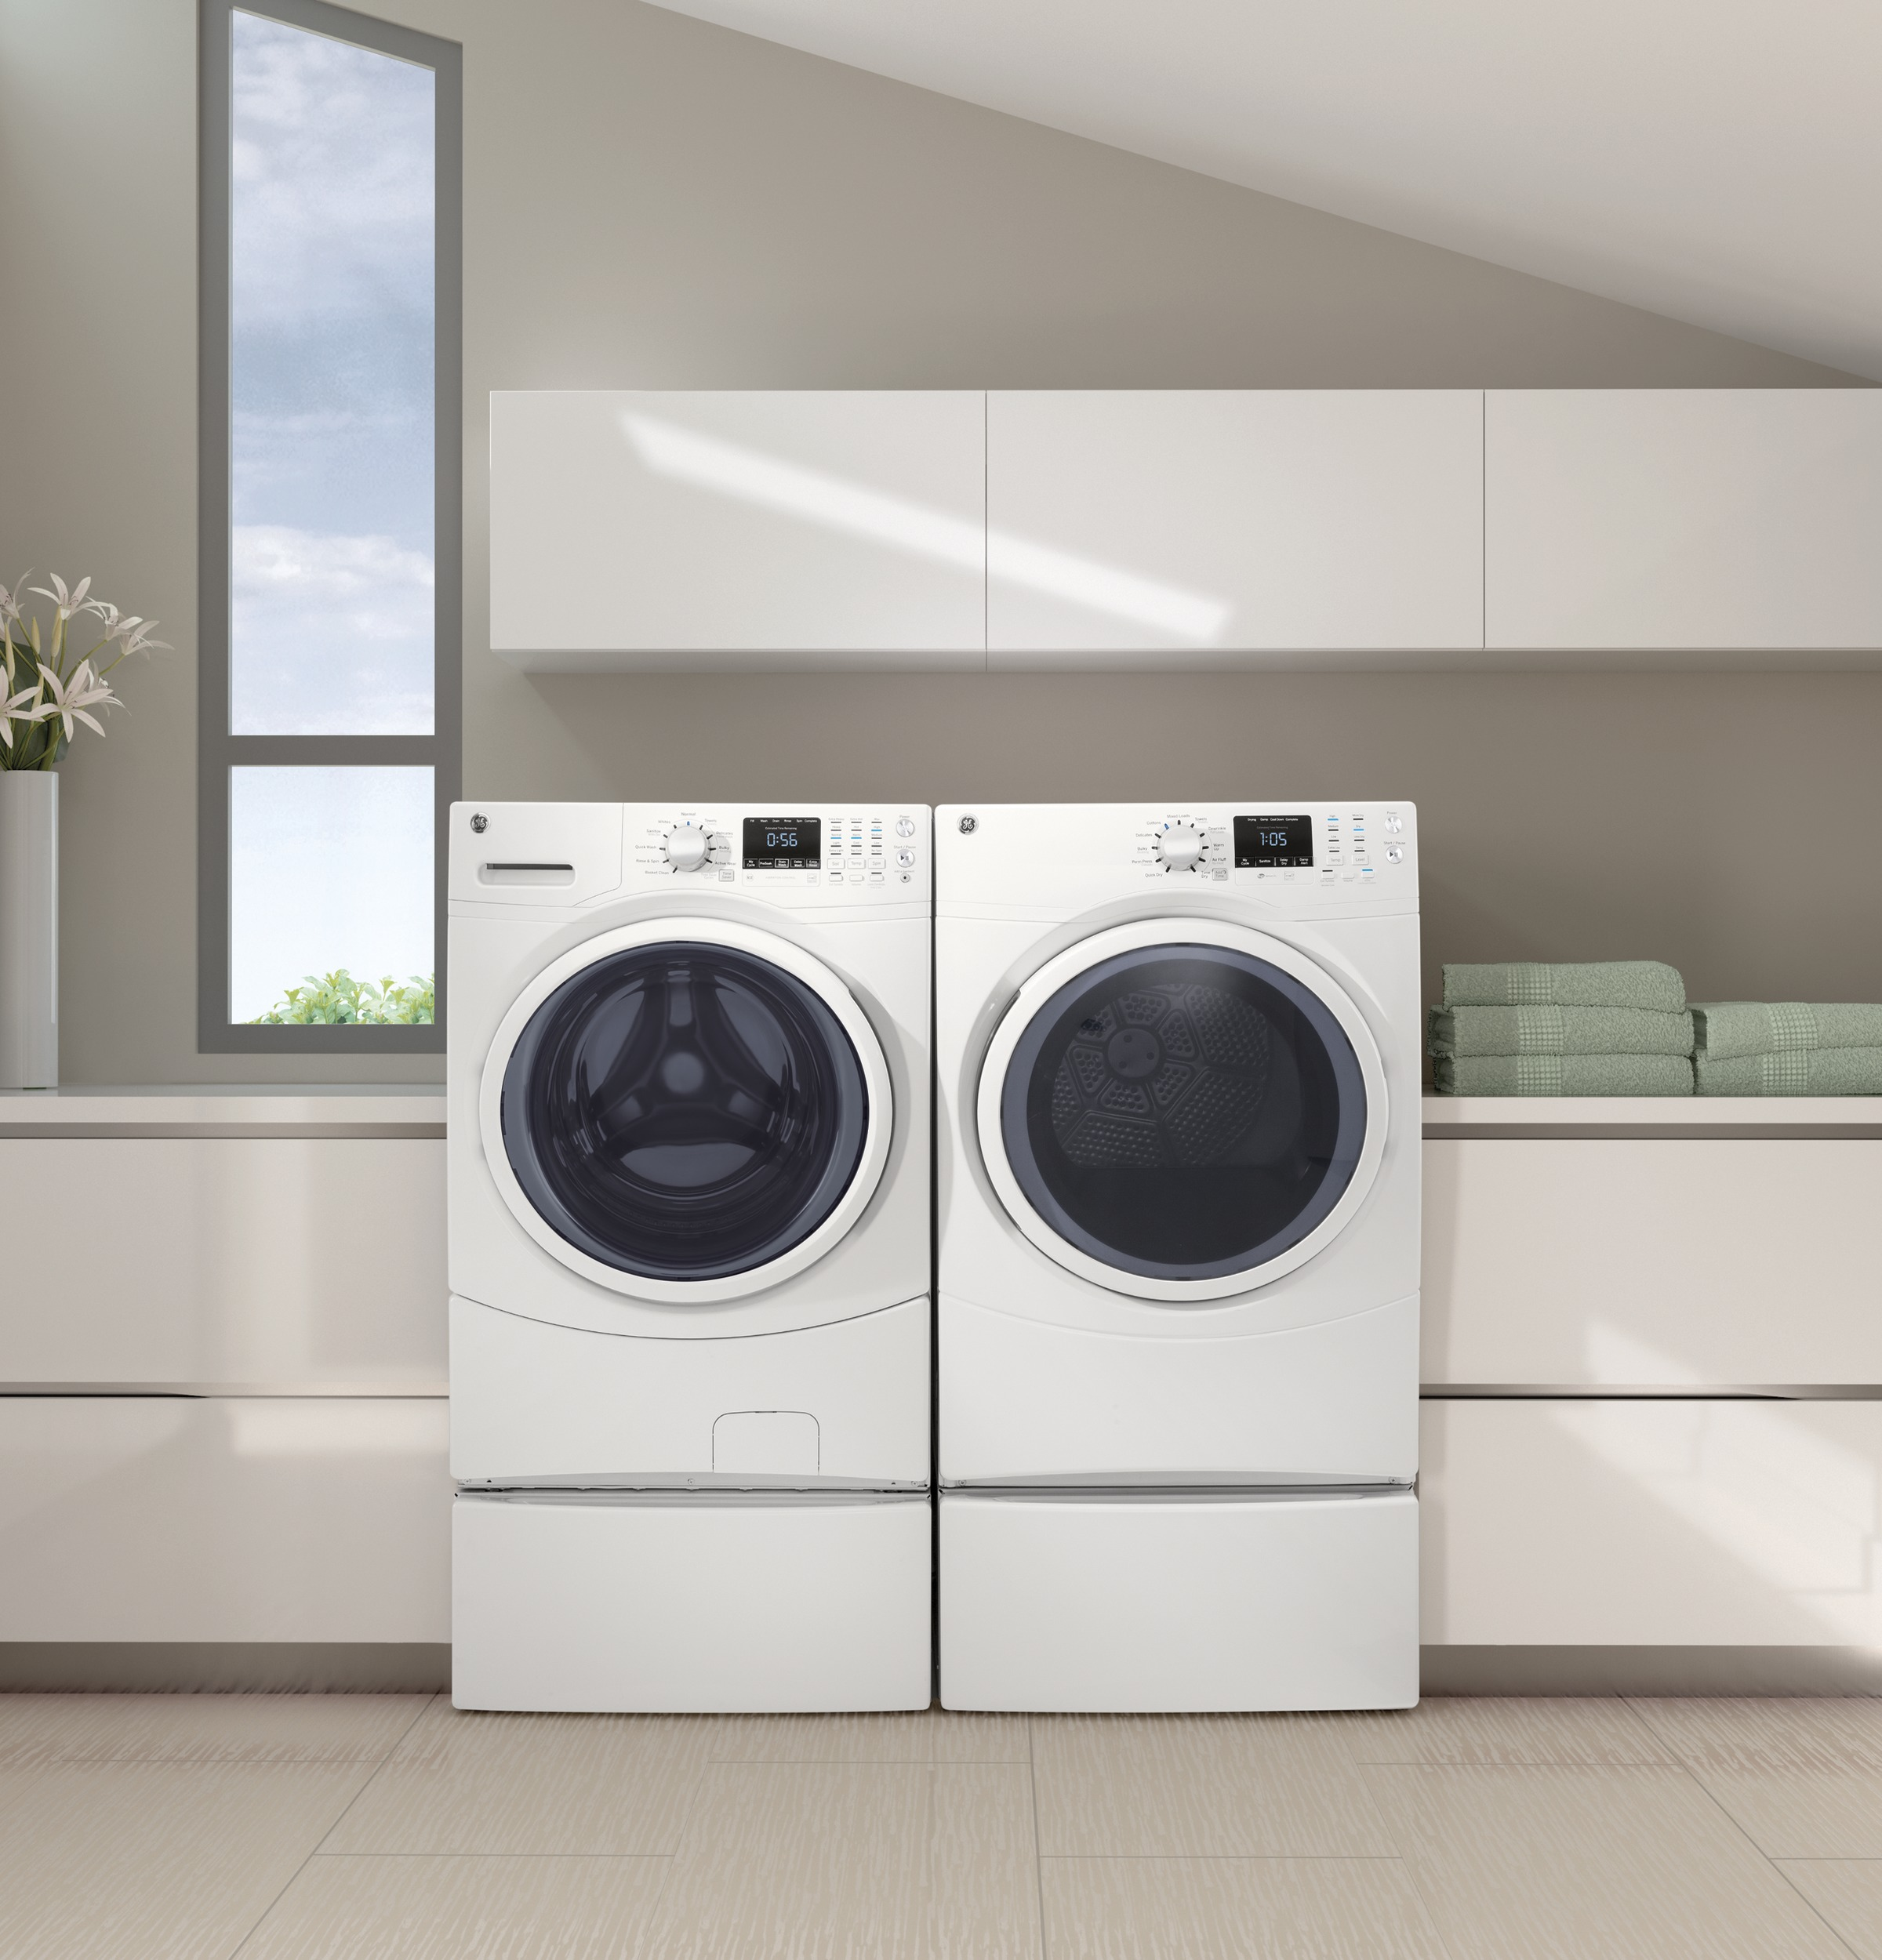 GE washing machine service near me